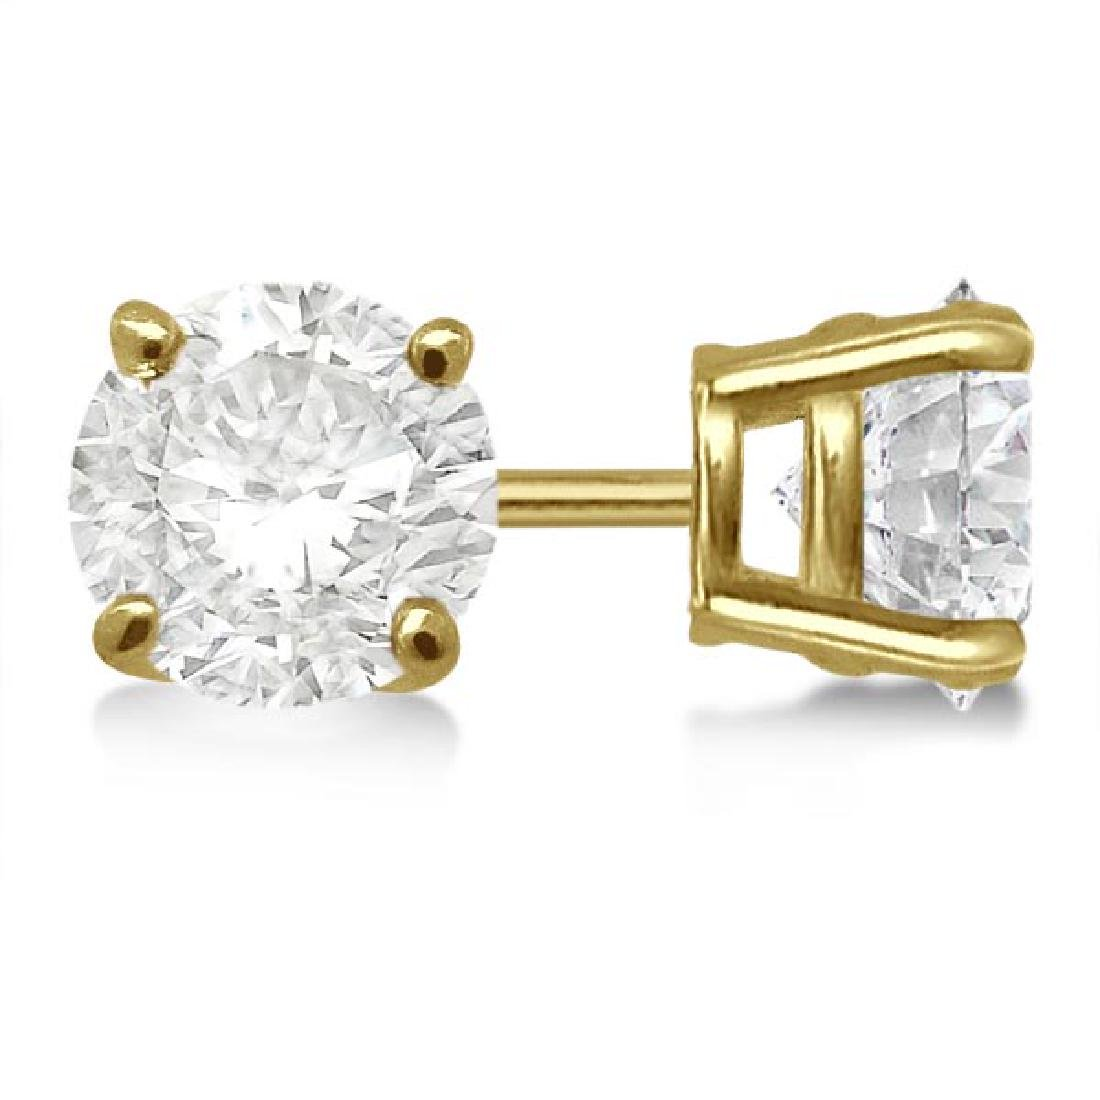 CERTIFIED 0.9 CTW ROUND H/SI2 DIAMOND SOLITAIRE EARRING